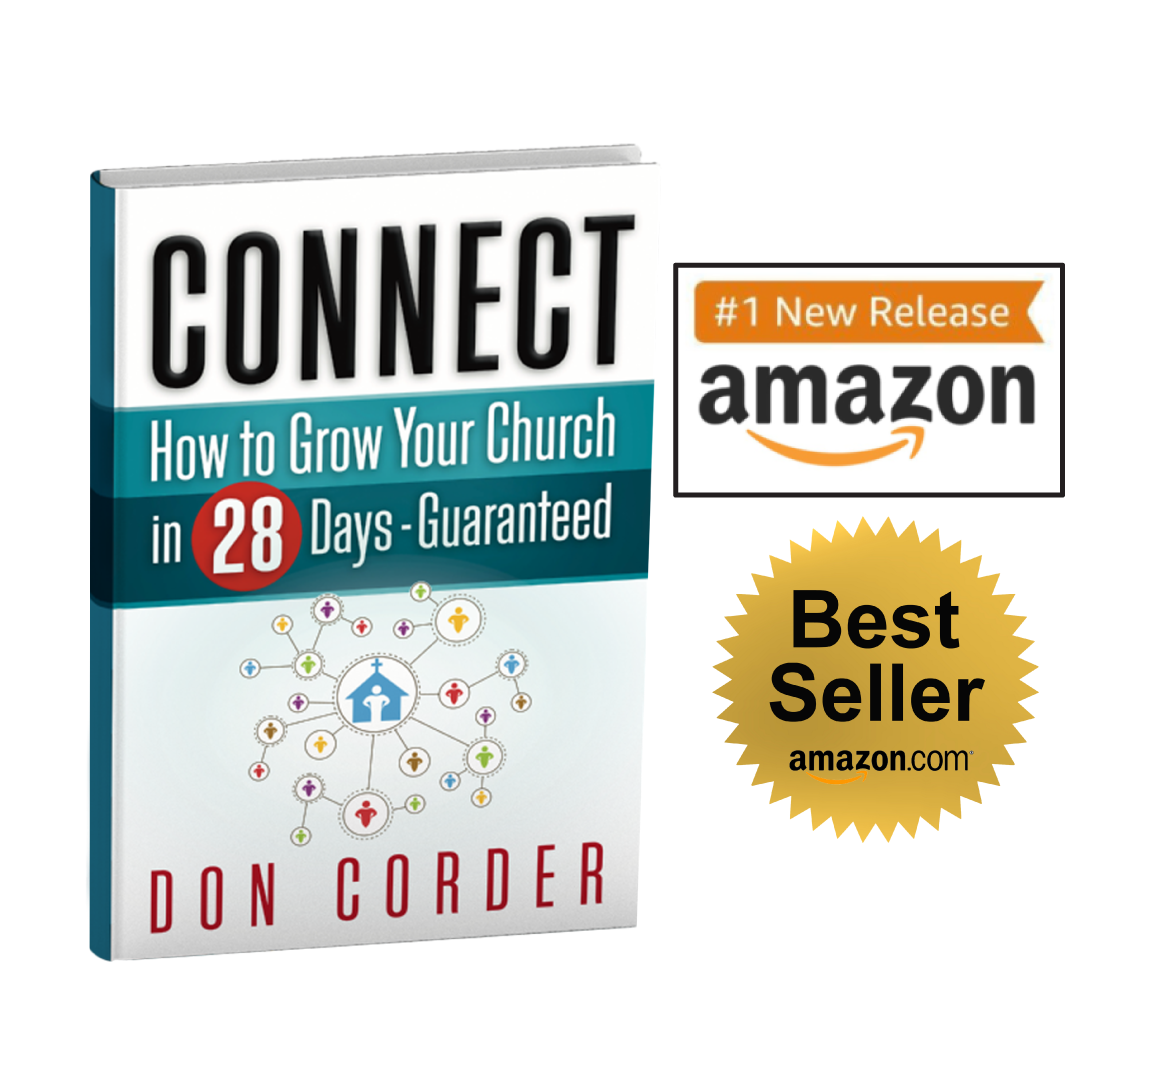 How to Grow Your Church in 28 Days - Guaranteed